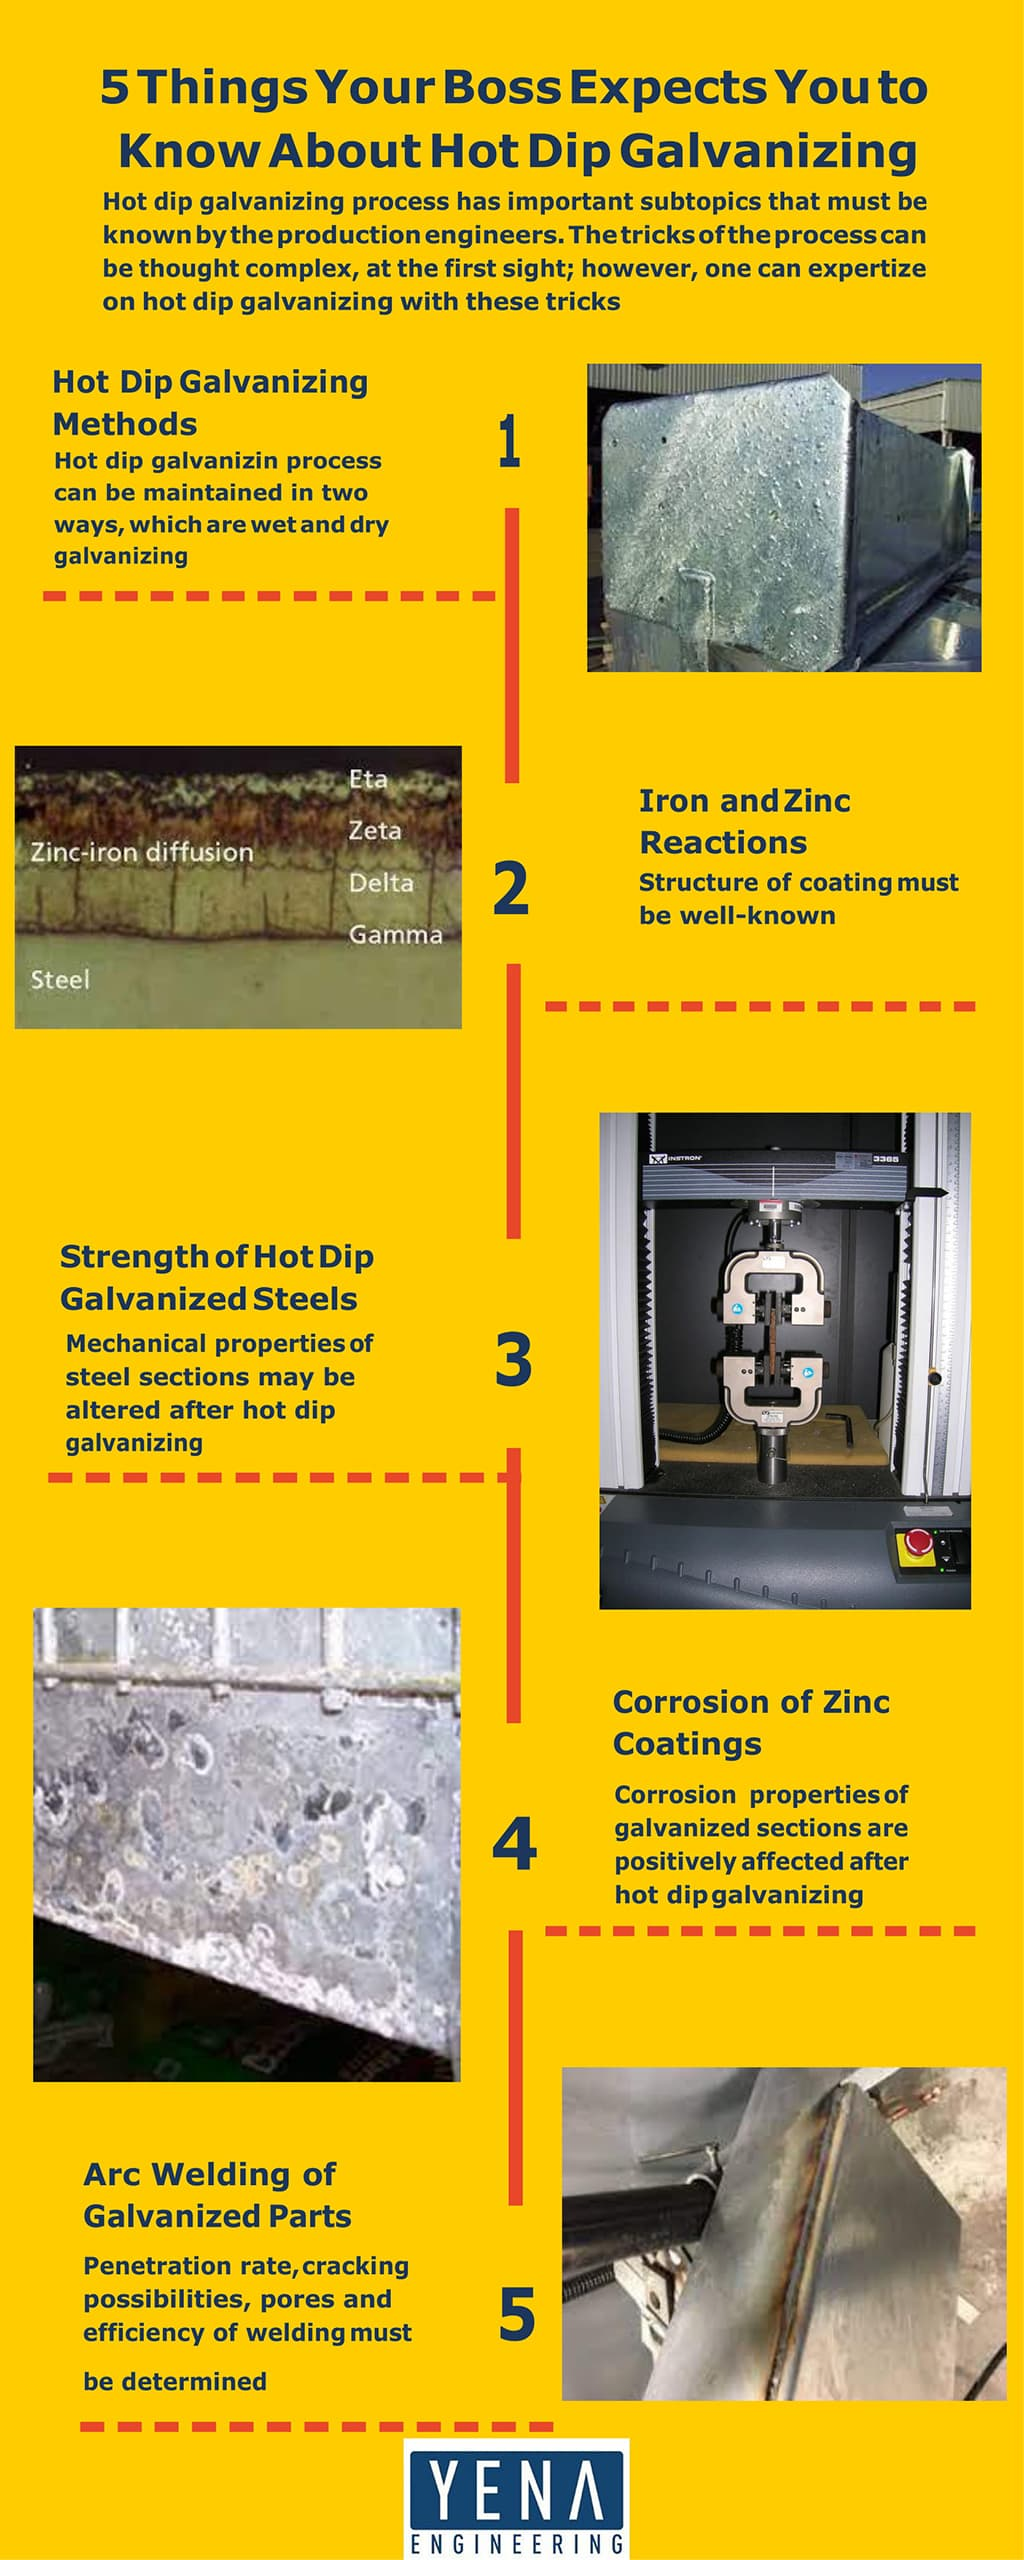 5 Things Your Boss Expects You to Know About Hot Dip Galvanizing